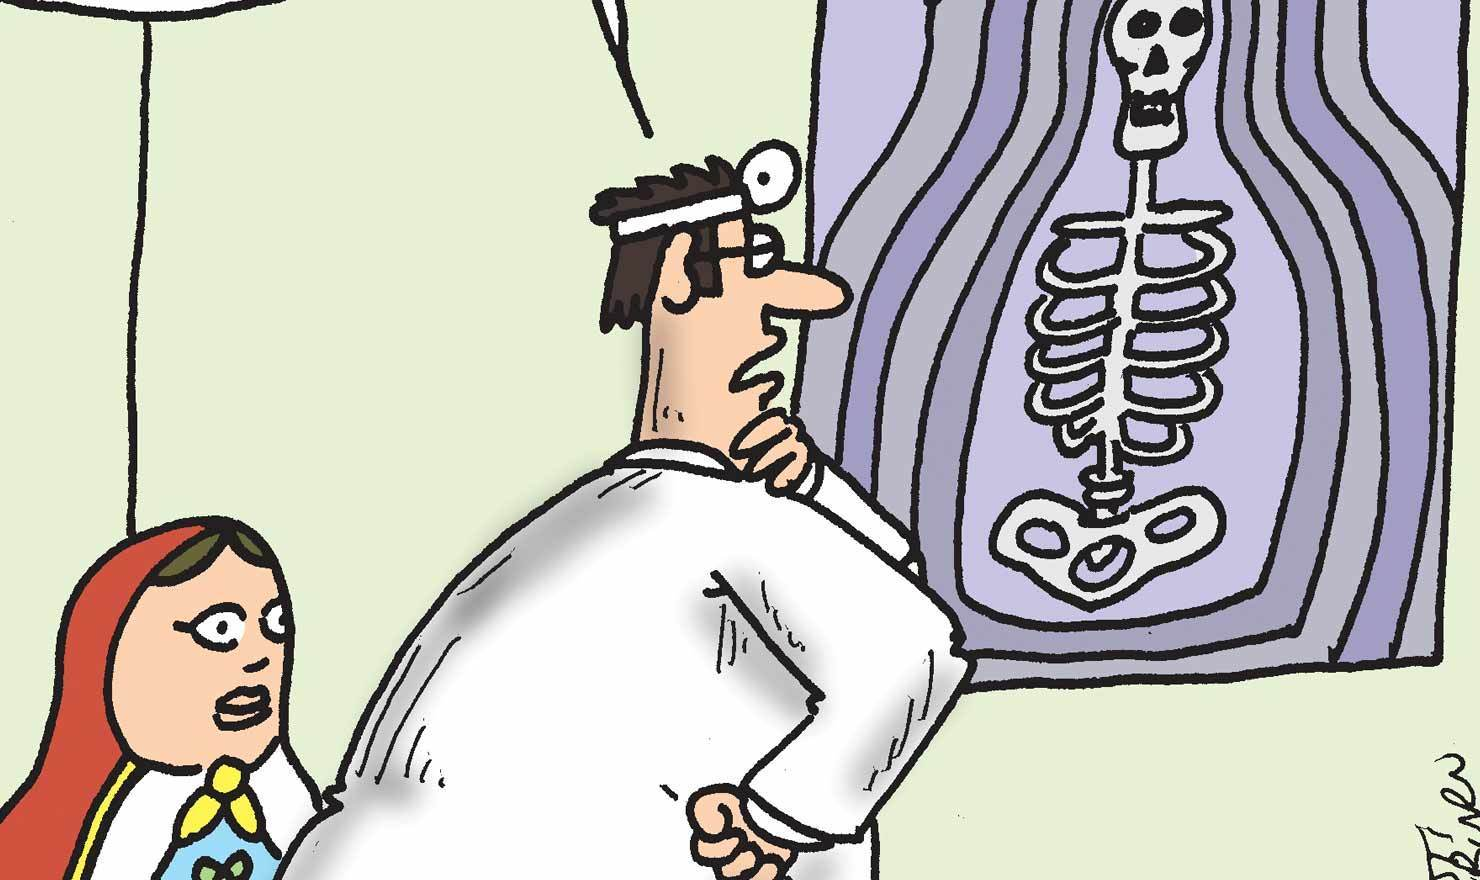 Look Through These 10 X-Ray Day Comics